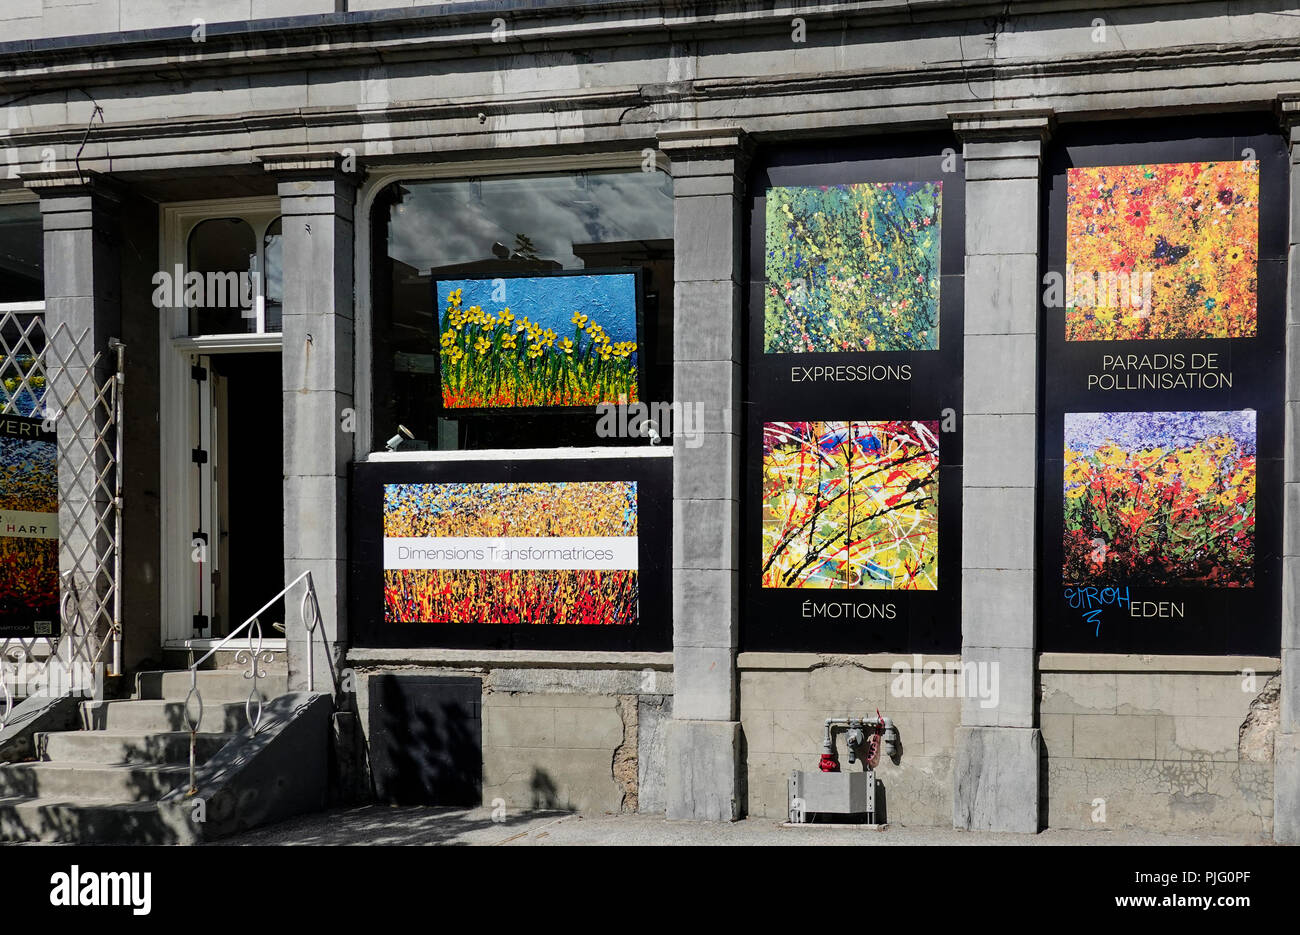 Pil painting on display in the window of an art gallery on Rue Saint-Paul in Montreal - Stock Image